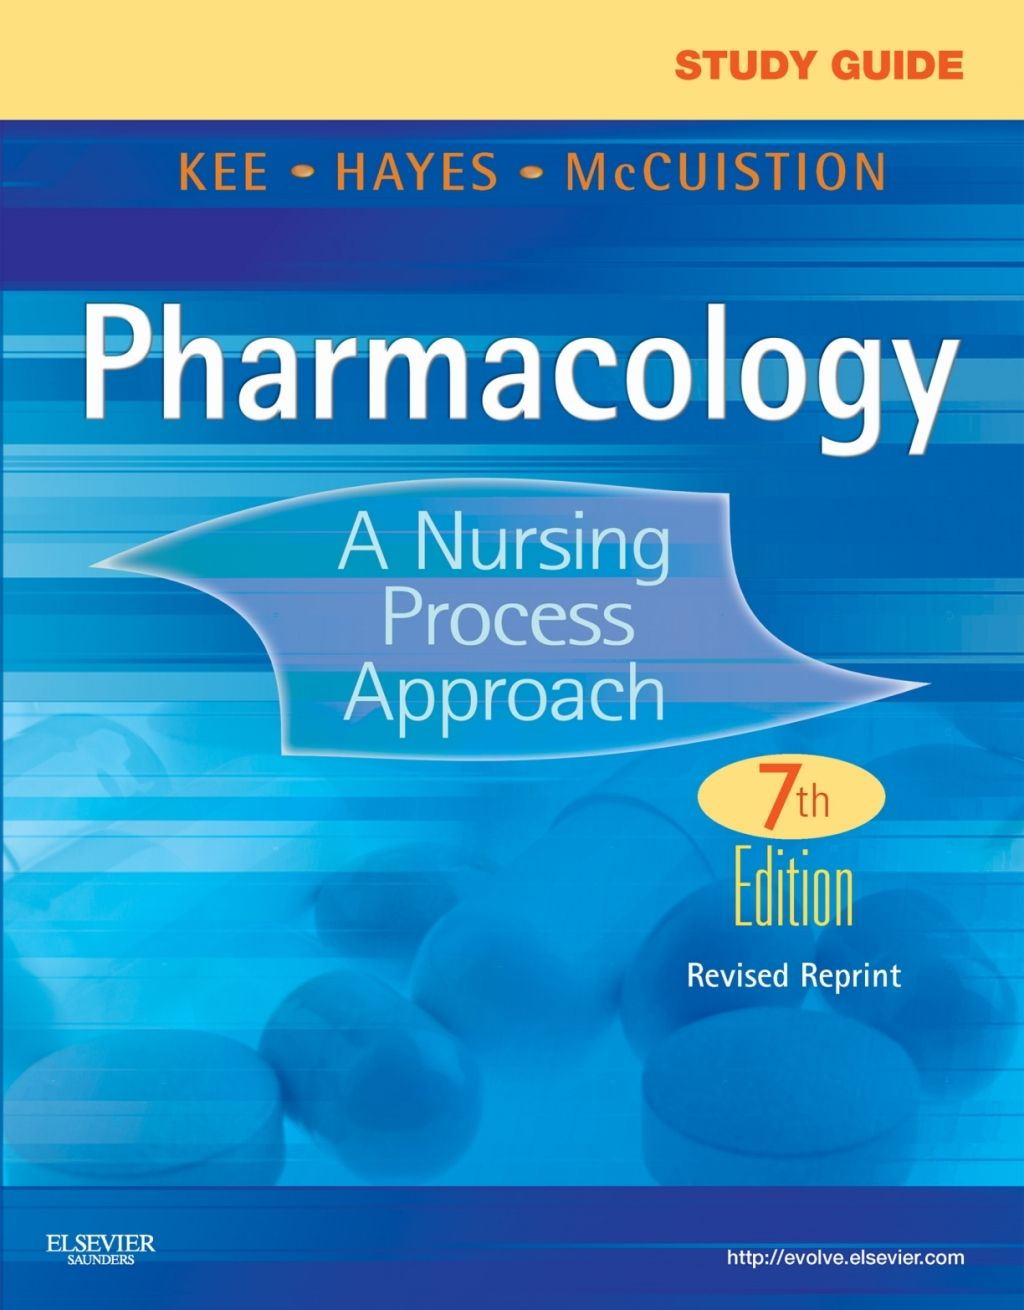 Study Guide For Pharmacology E Book 7th Edition Ebook Rental In 2021 Nursing Process Pharmacology Study Guide